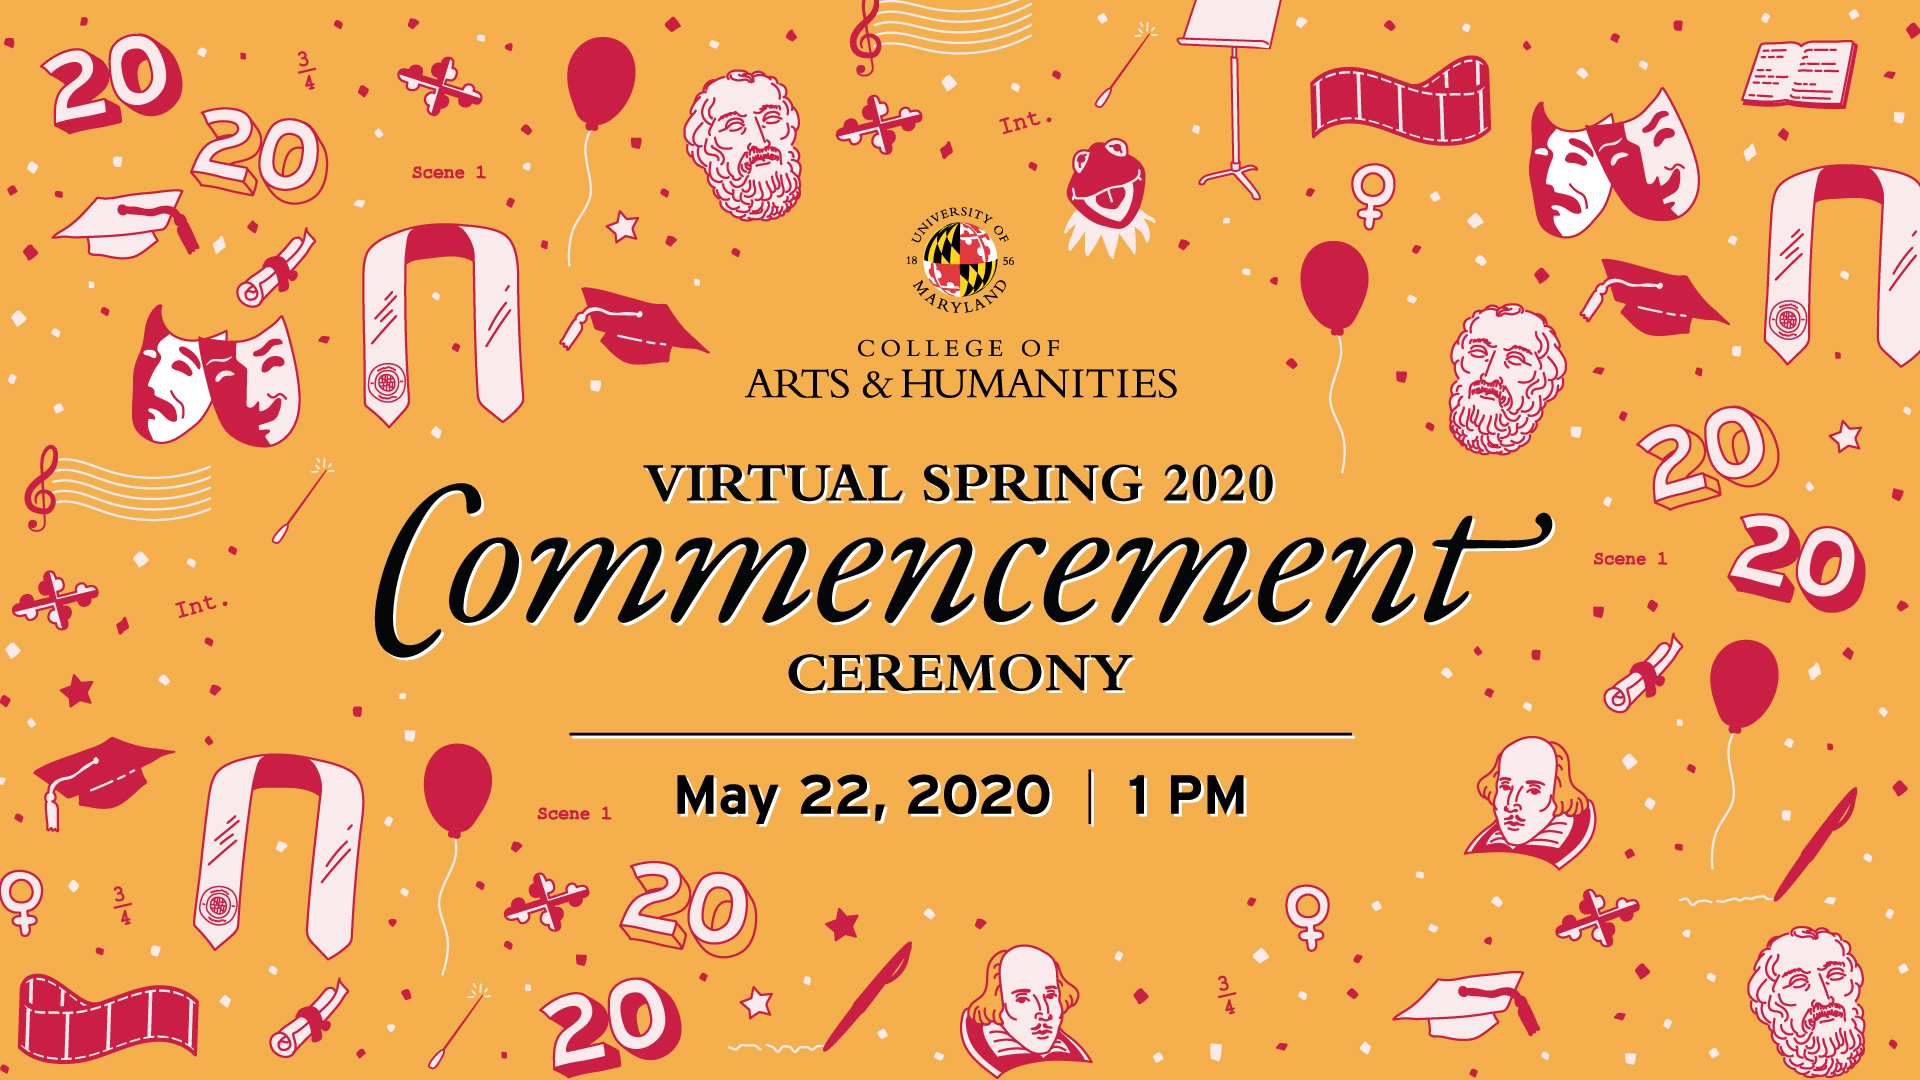 Inset for 2020 arhu commencement